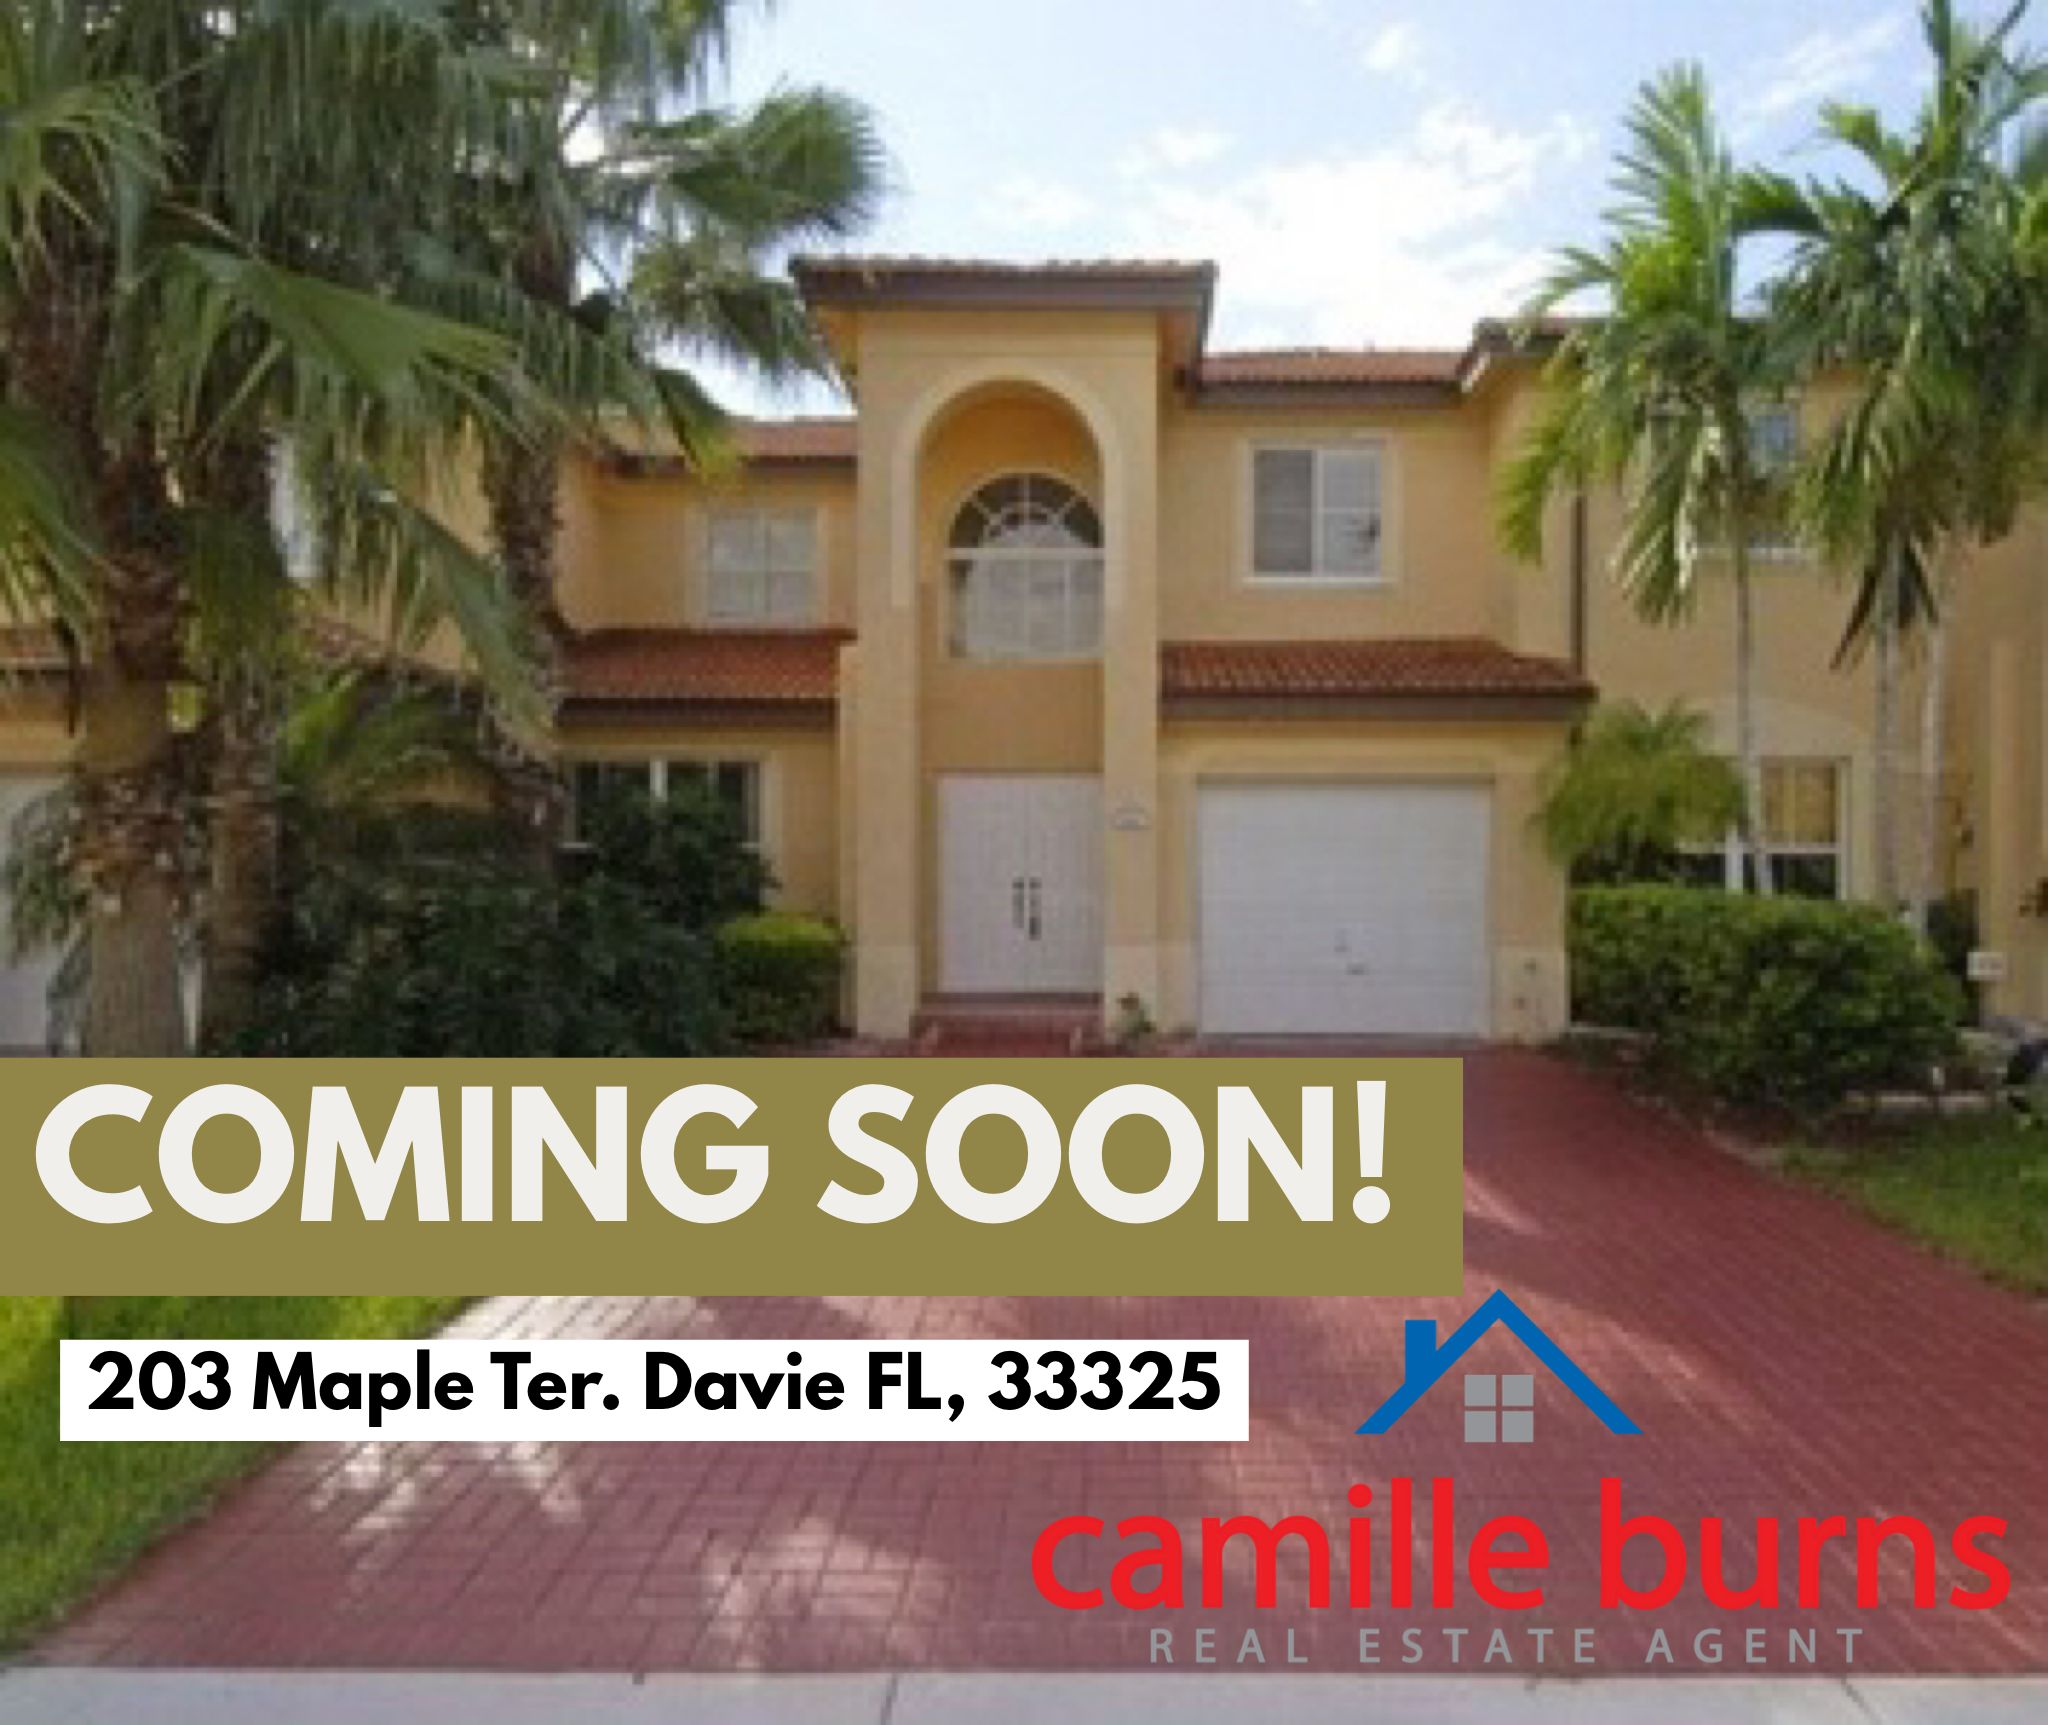 Coming Soon Pionciana Parc In Davie Fl 3 Bed 2 Bath Townhome With A One Car Garage Listed For 310 0 South Florida Real Estate Davie Fl Real Estate Agent